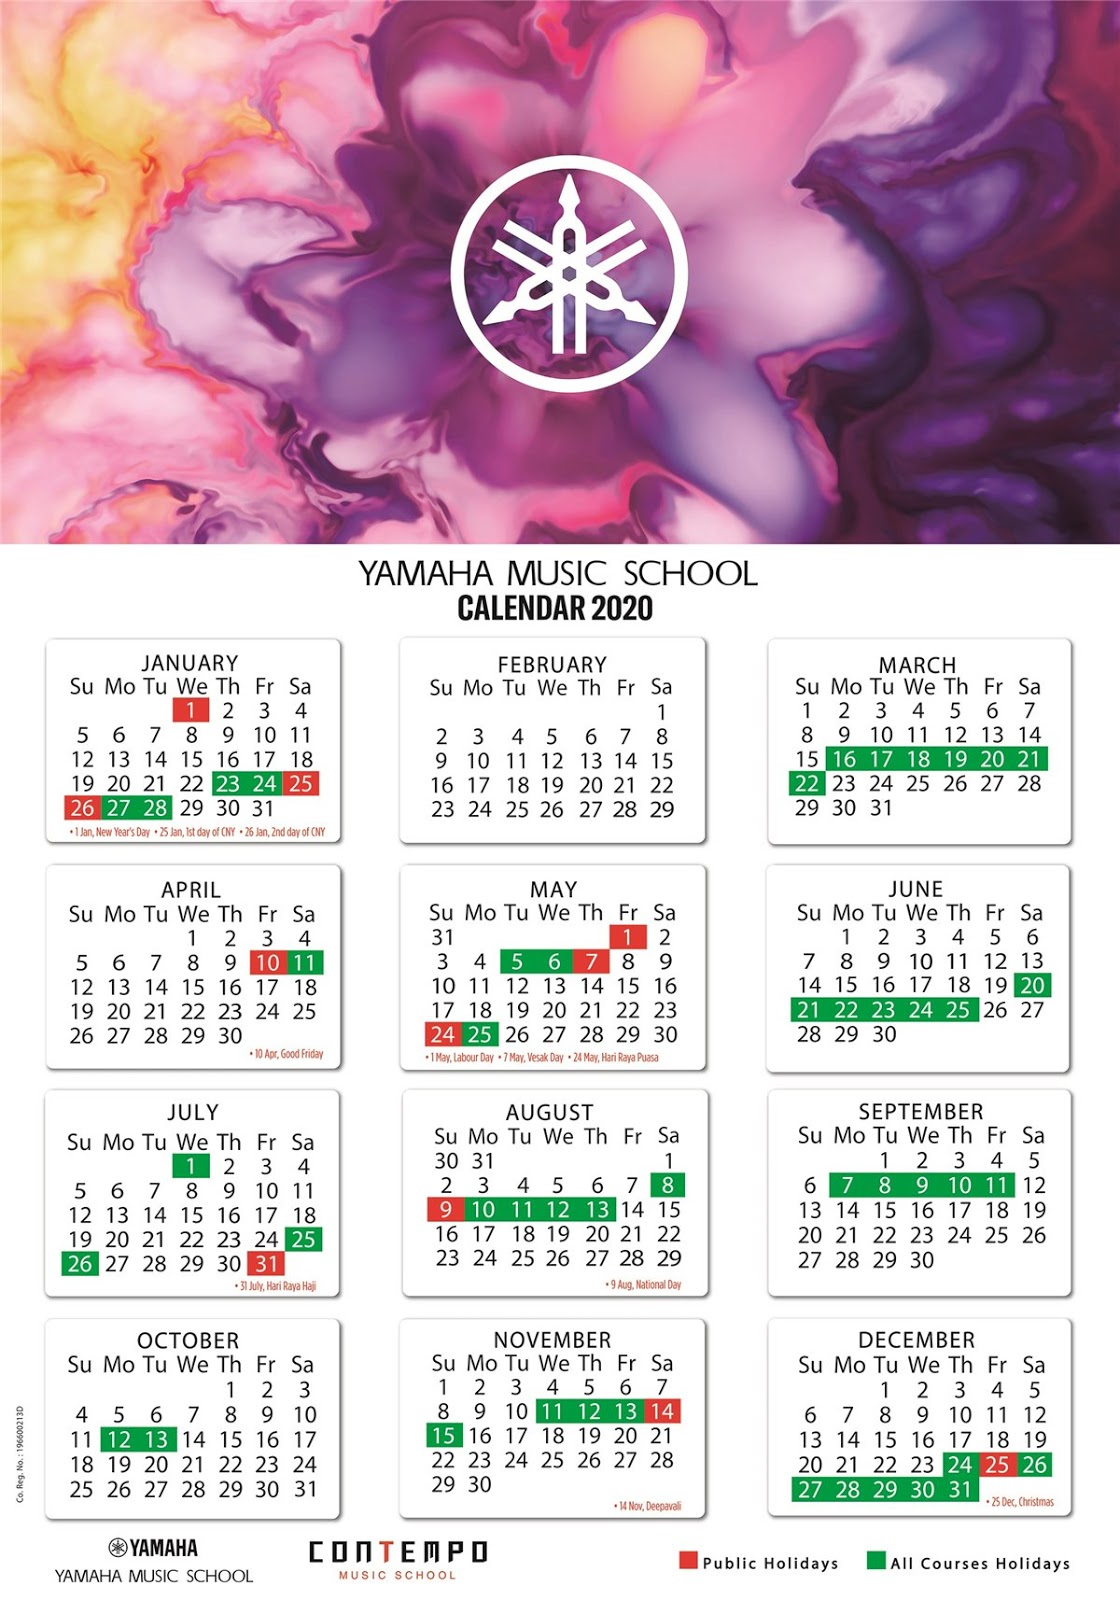 Electone Corner: Yamaha Course Calendar 2020 with regard to Yamaha Calendar 2020 Singapore